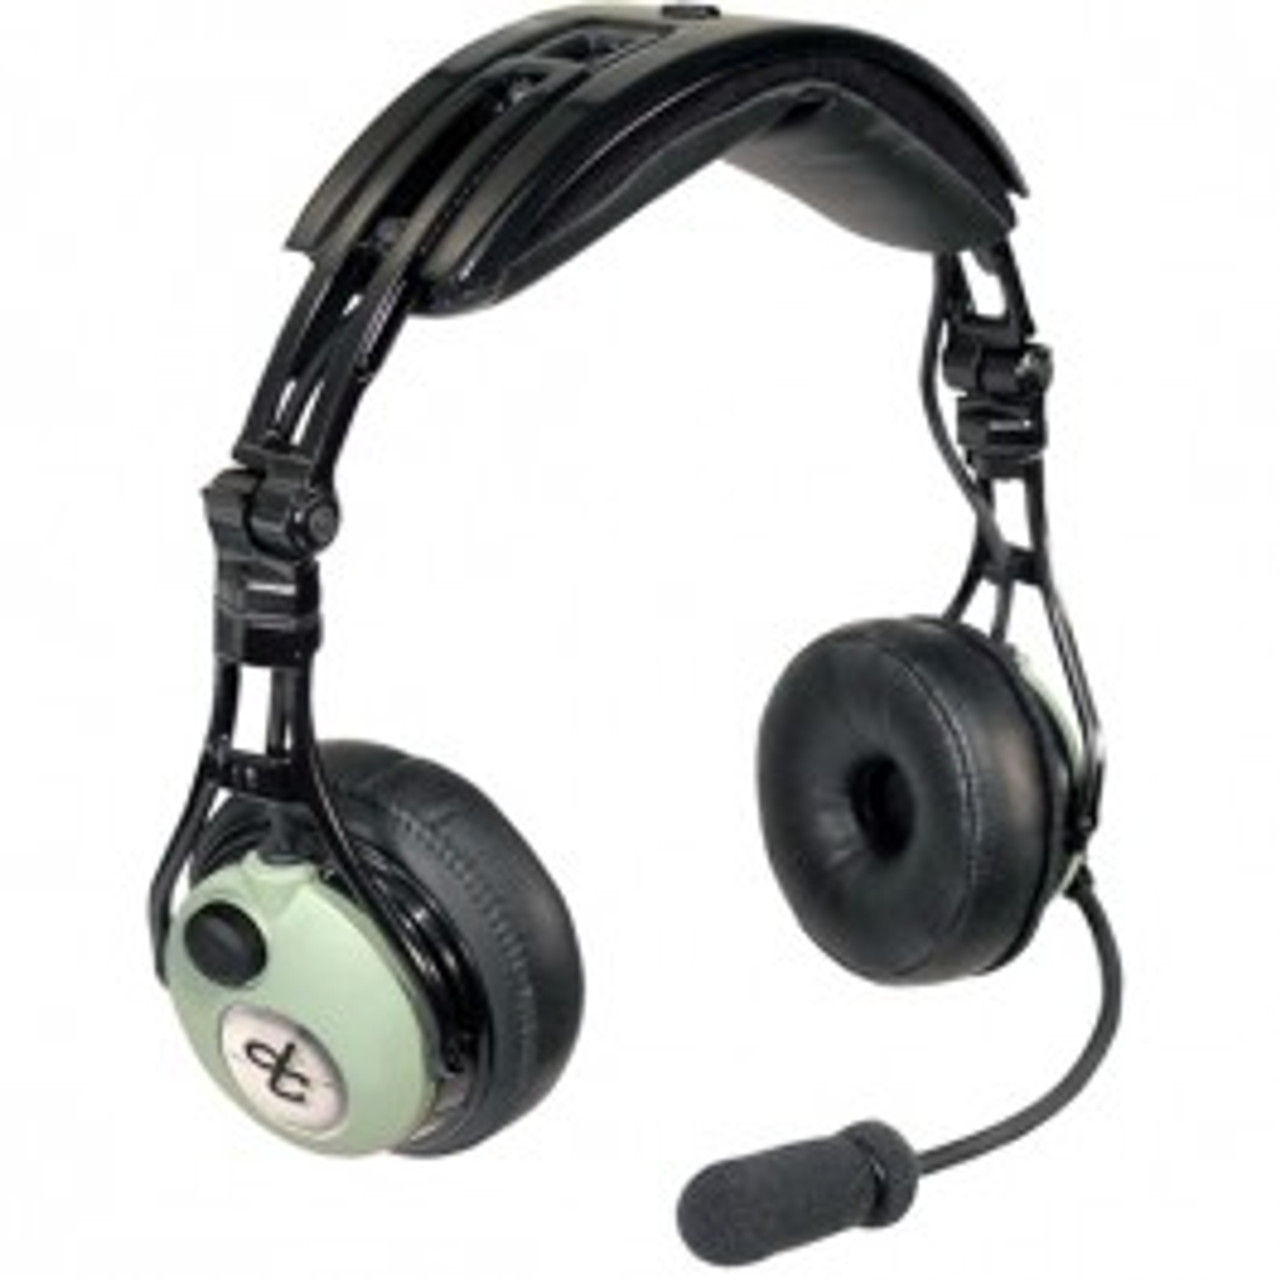 David Clark PRO-2 Passive Headset Next generation DC PRO-2 passive noise-attenuating headsets combine outstanding comfort, performance and durability in a lightweight, rest-on-ear design. These headsets are ideal for commercial pilots that fly low-noise aircraft where Electronic Noise Cancelling ANR technology is not required. DC PRO-2 headsets provide enhanced audio quality and clear, crisp voice transmission utilizing advanced, noise-cancelling electret microphones. DC PRO-2 passive headsets come with a 30-day, Fly it Free, money back guarantee and 5-year warranty.  Enhanced audio performance and M-5B electret noise-cancelling microphone for clear voice transmission Soft, Outlast® technology, heat absorbing head pad keeps you cool and comfortable in flight Superior passive noise attenuation for a rest-on-ear style headset Plush, rest-on-ear (supra aural), leatherette ear seals reduce heat buildup Rugged, yet lightweight alloy suspension, less than 8 ounces Swivel hinge stirrup dramatically dissipates clamping pressure FAA TSO-C139a Approved